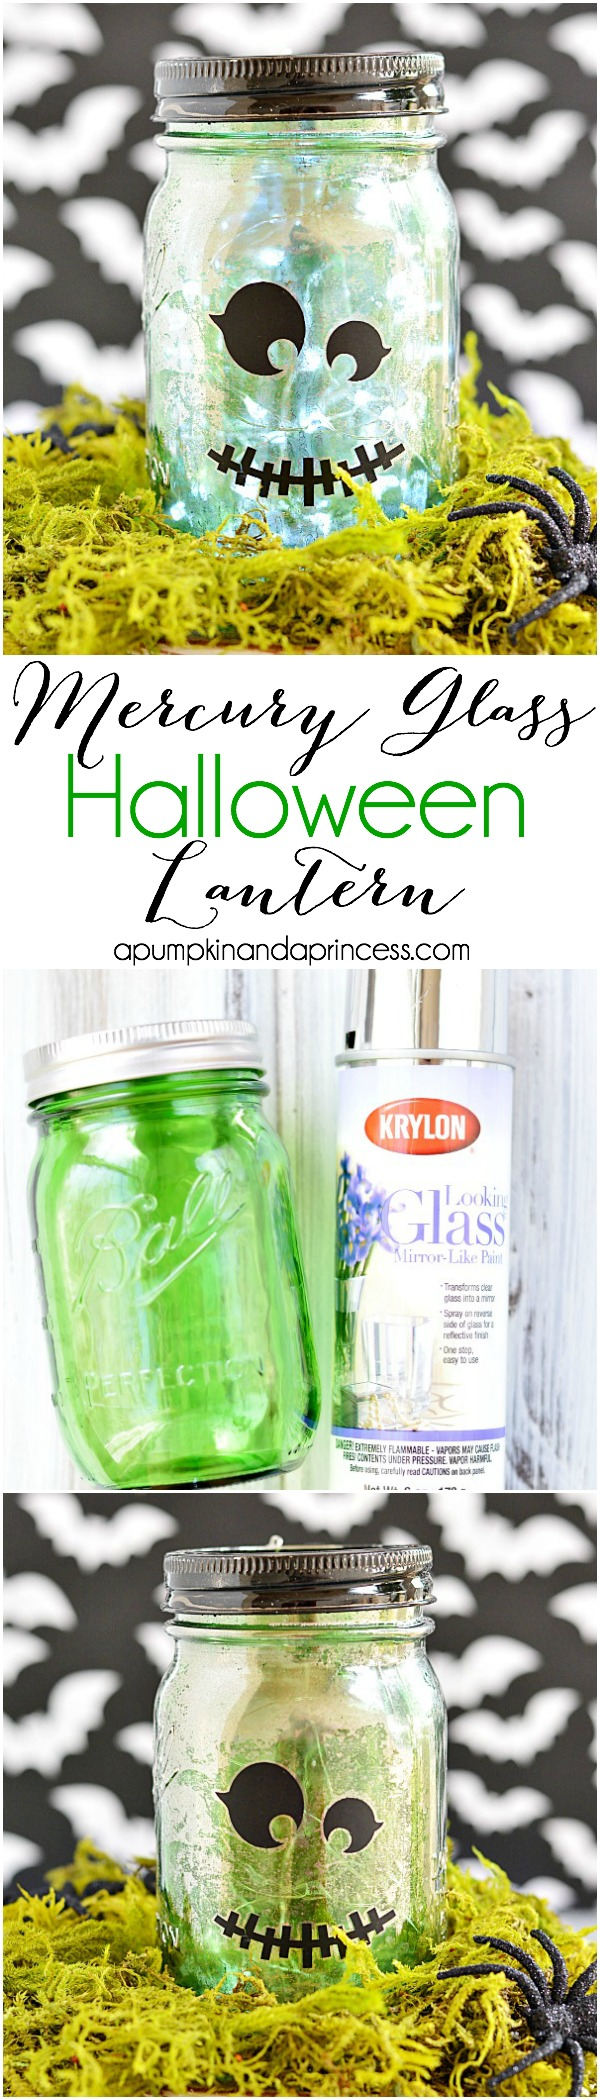 Mercury Glass Halloween Lantern